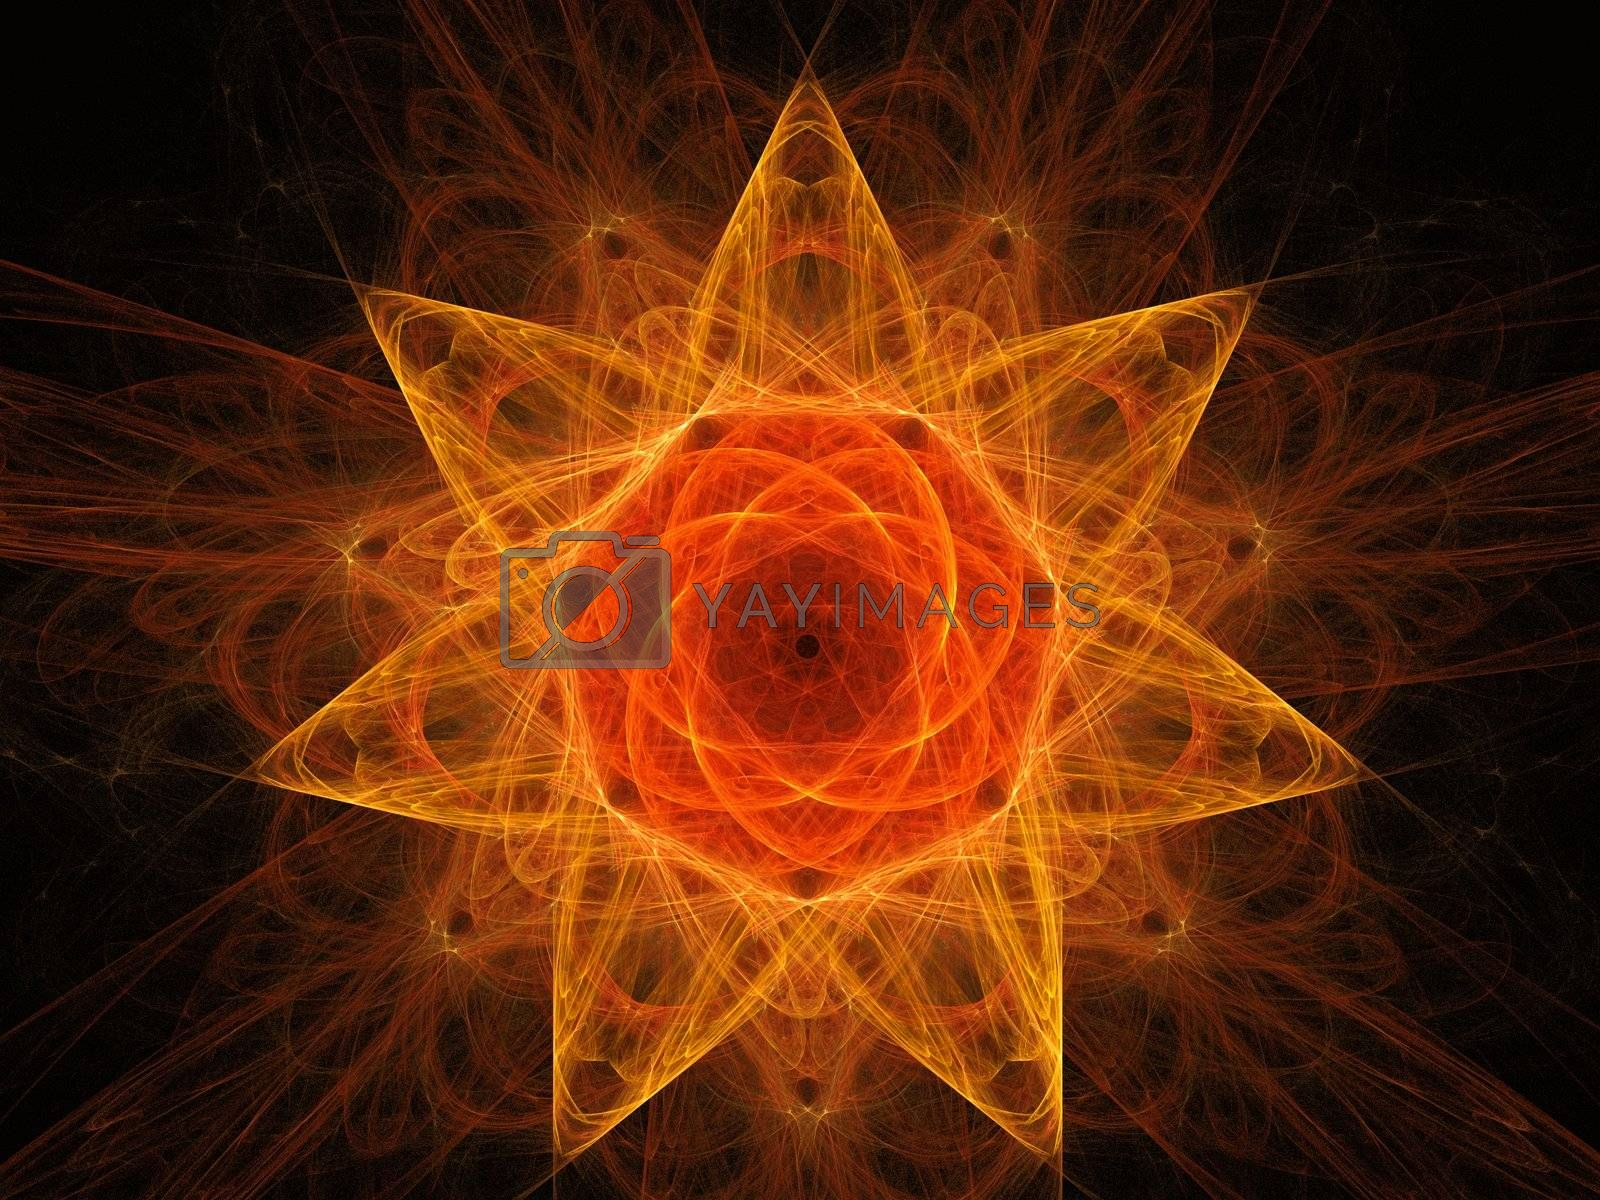 a star rendering created with fractal functions